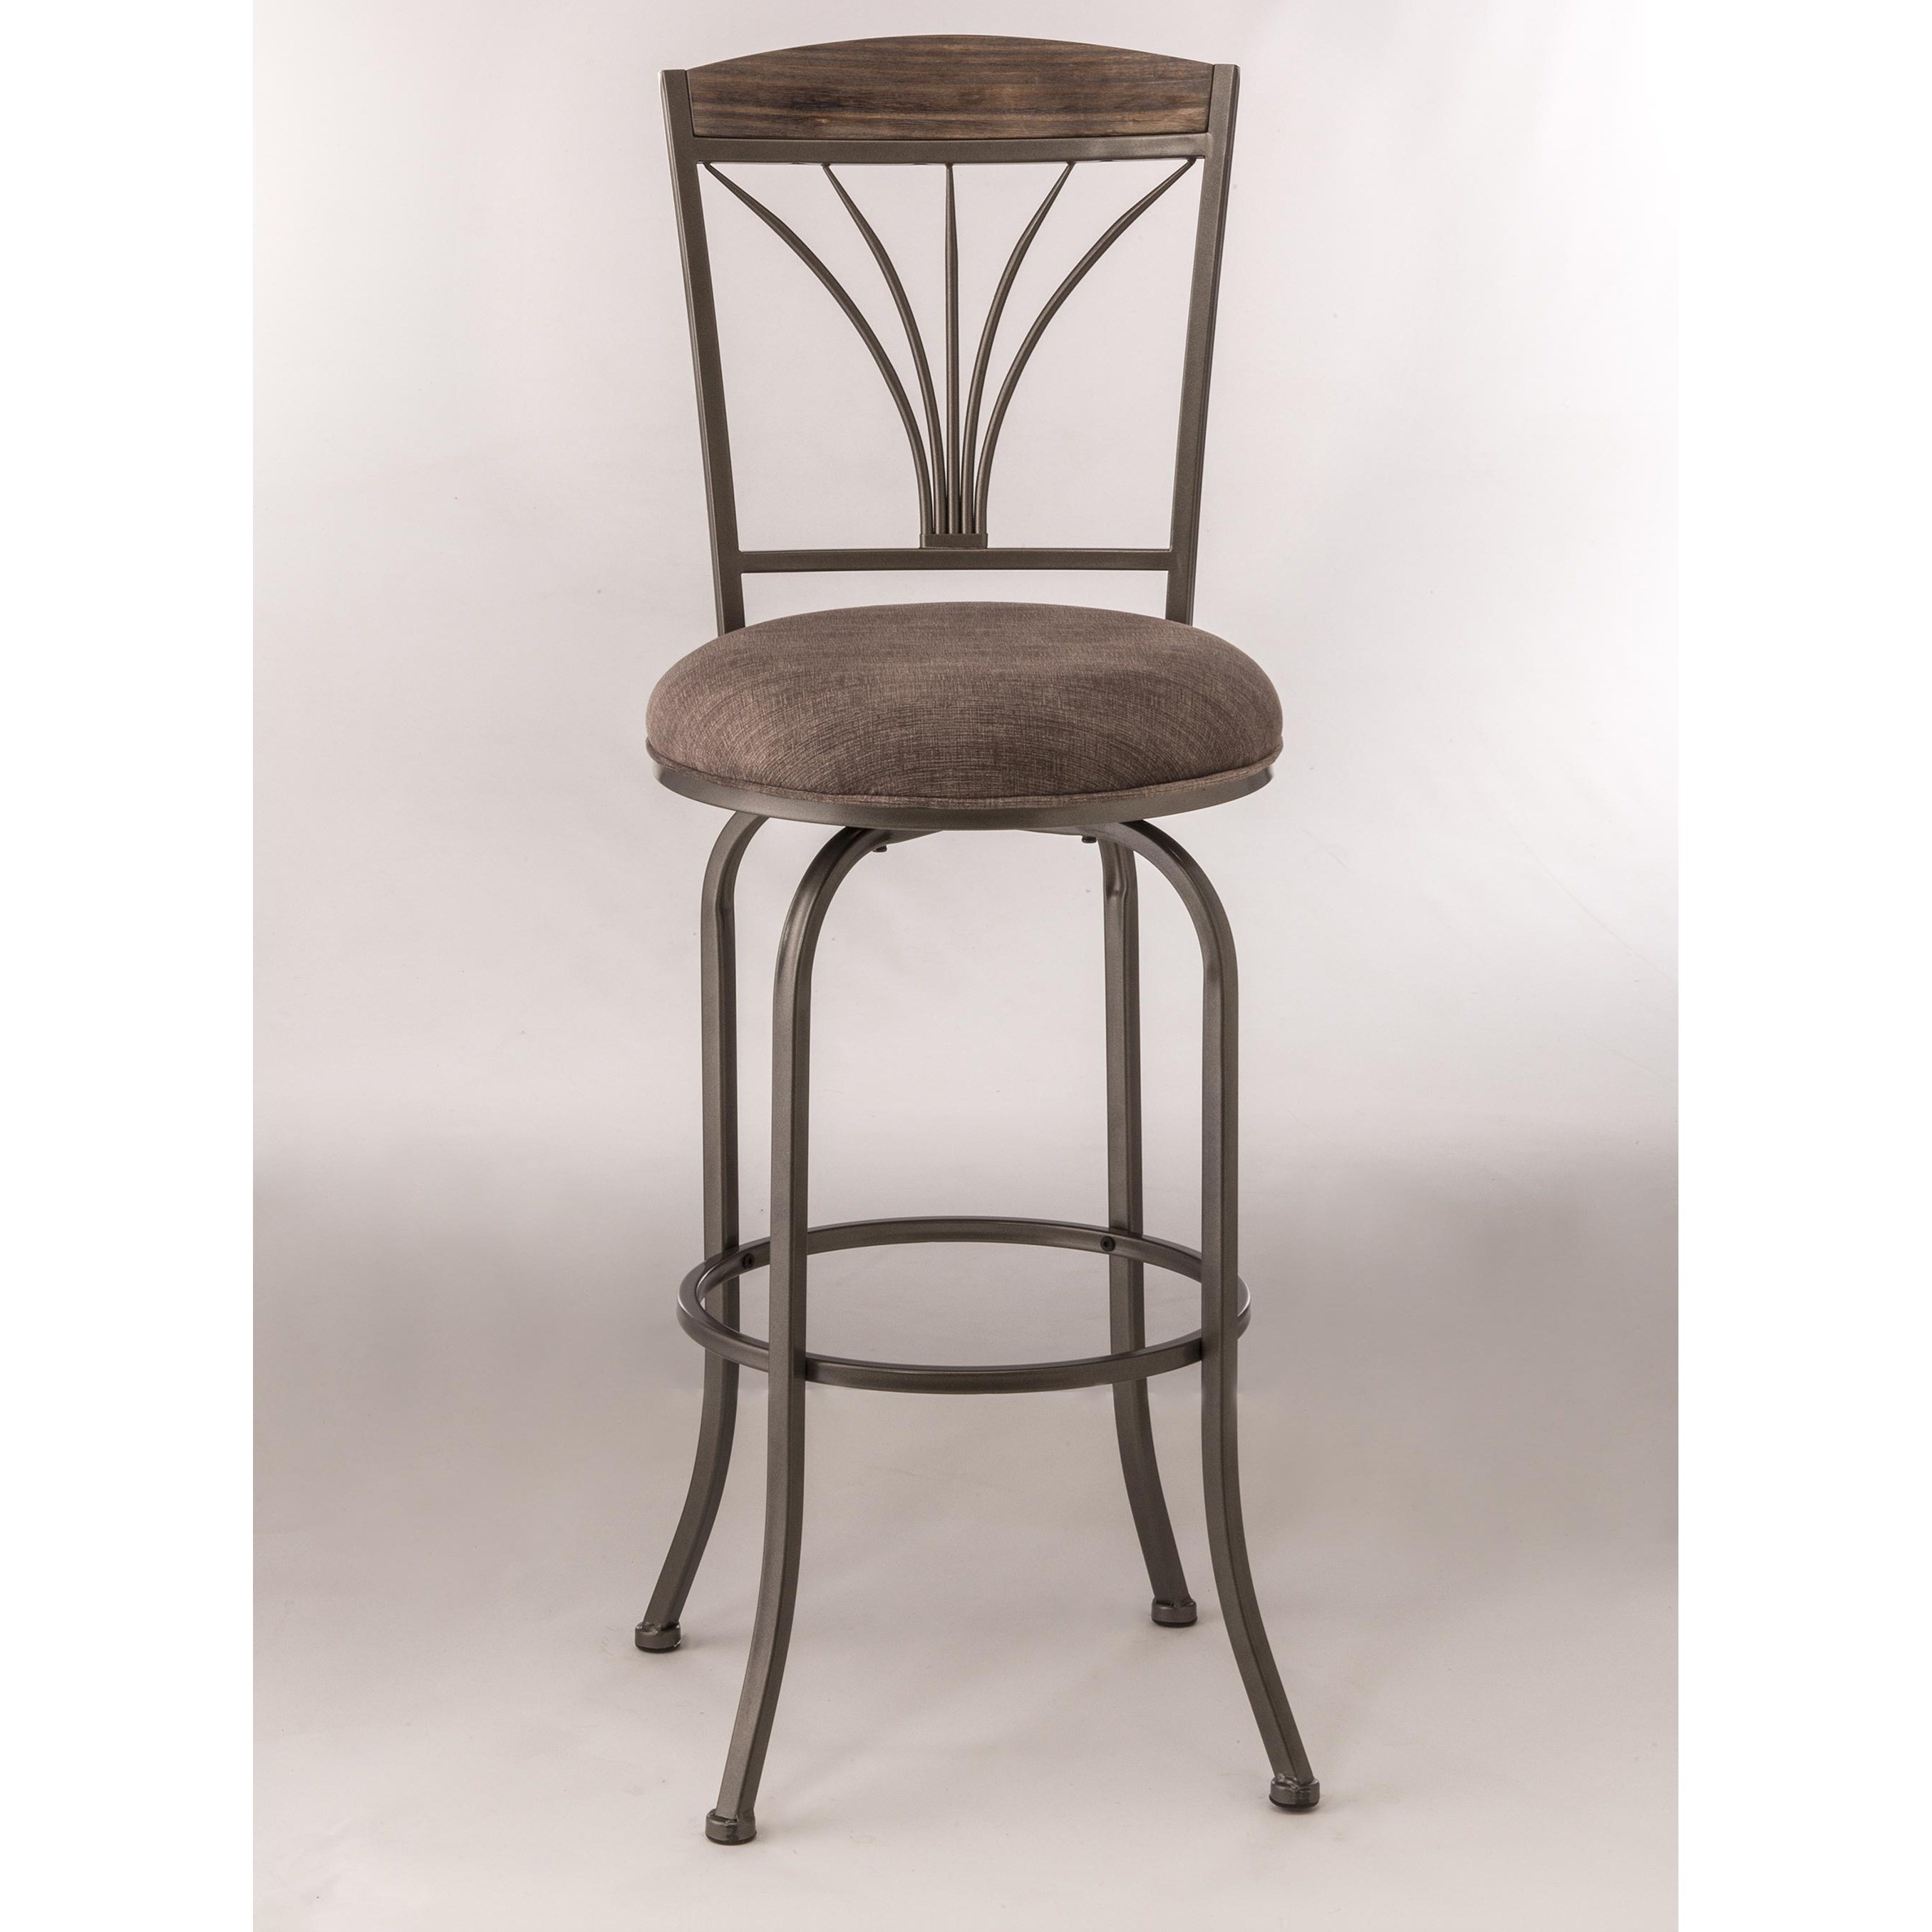 Hillsdale Metal Stools Swivel Counter Stool - Item Number: 5944-826